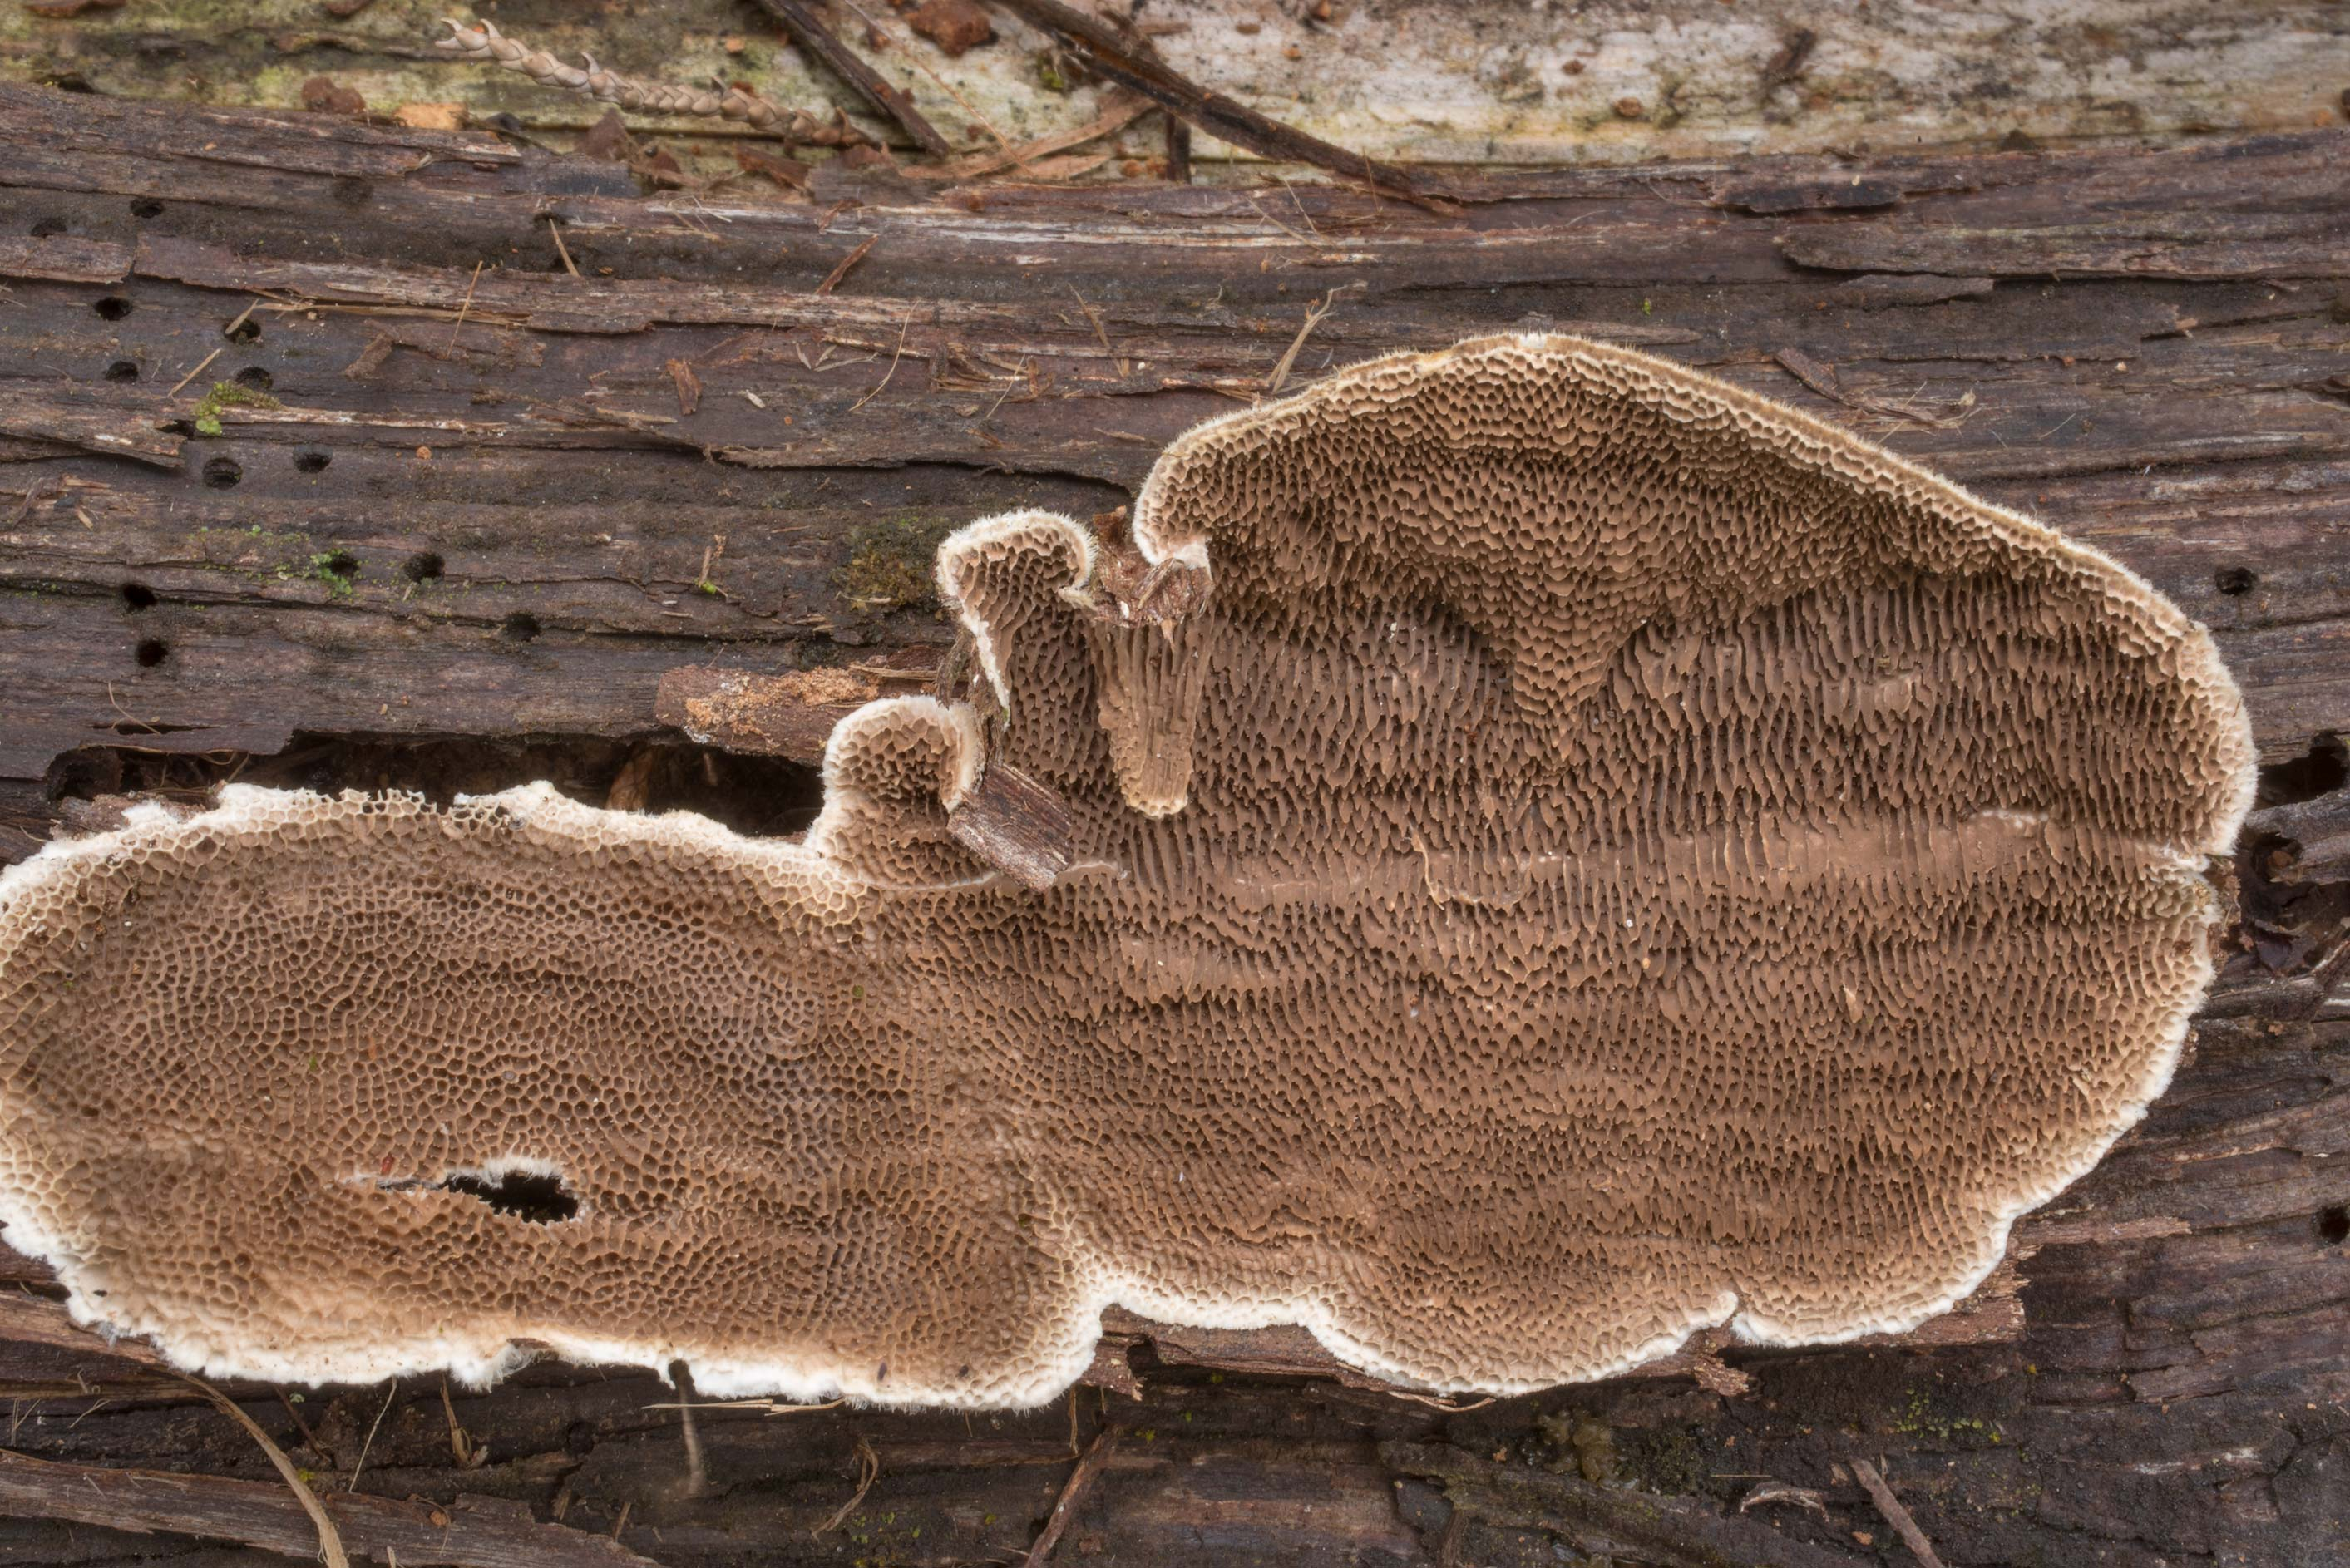 Pore surface of polypore mushroom Trametes...in Hensel Park. College Station, Texas